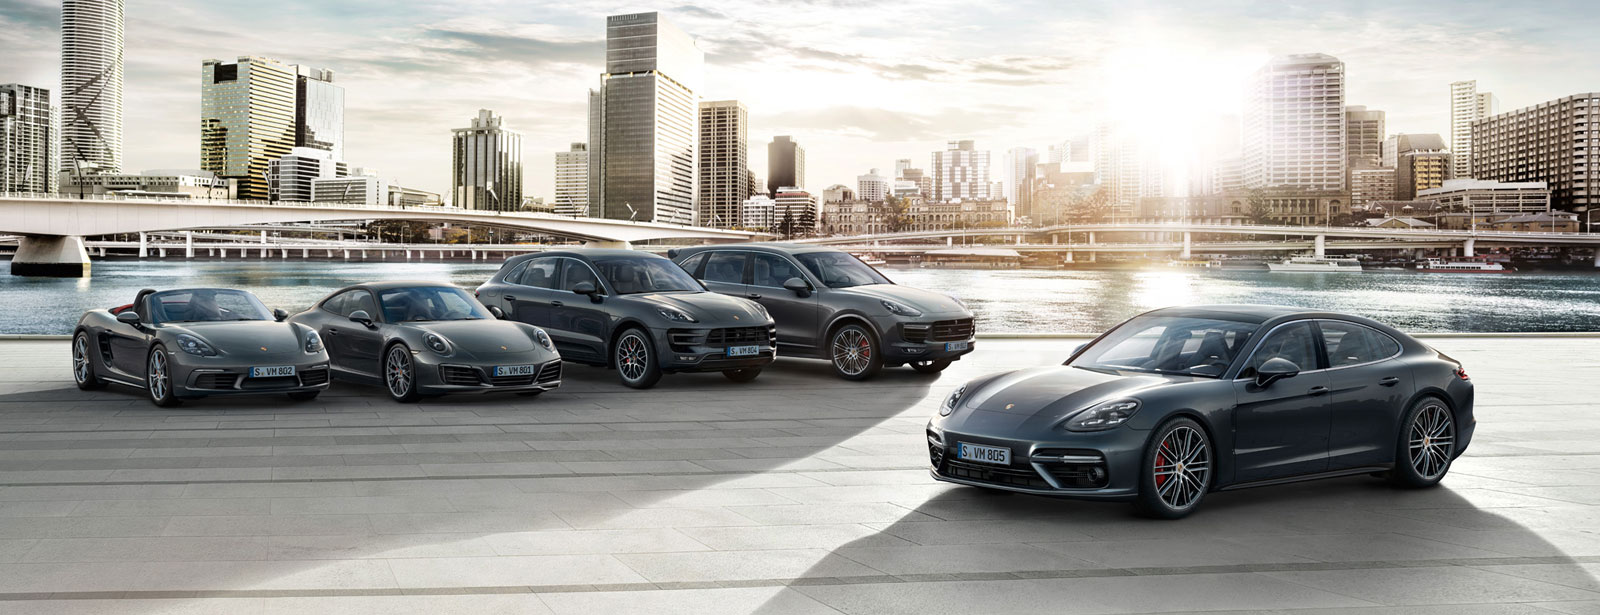 Porsche Starts Car Subscription Service